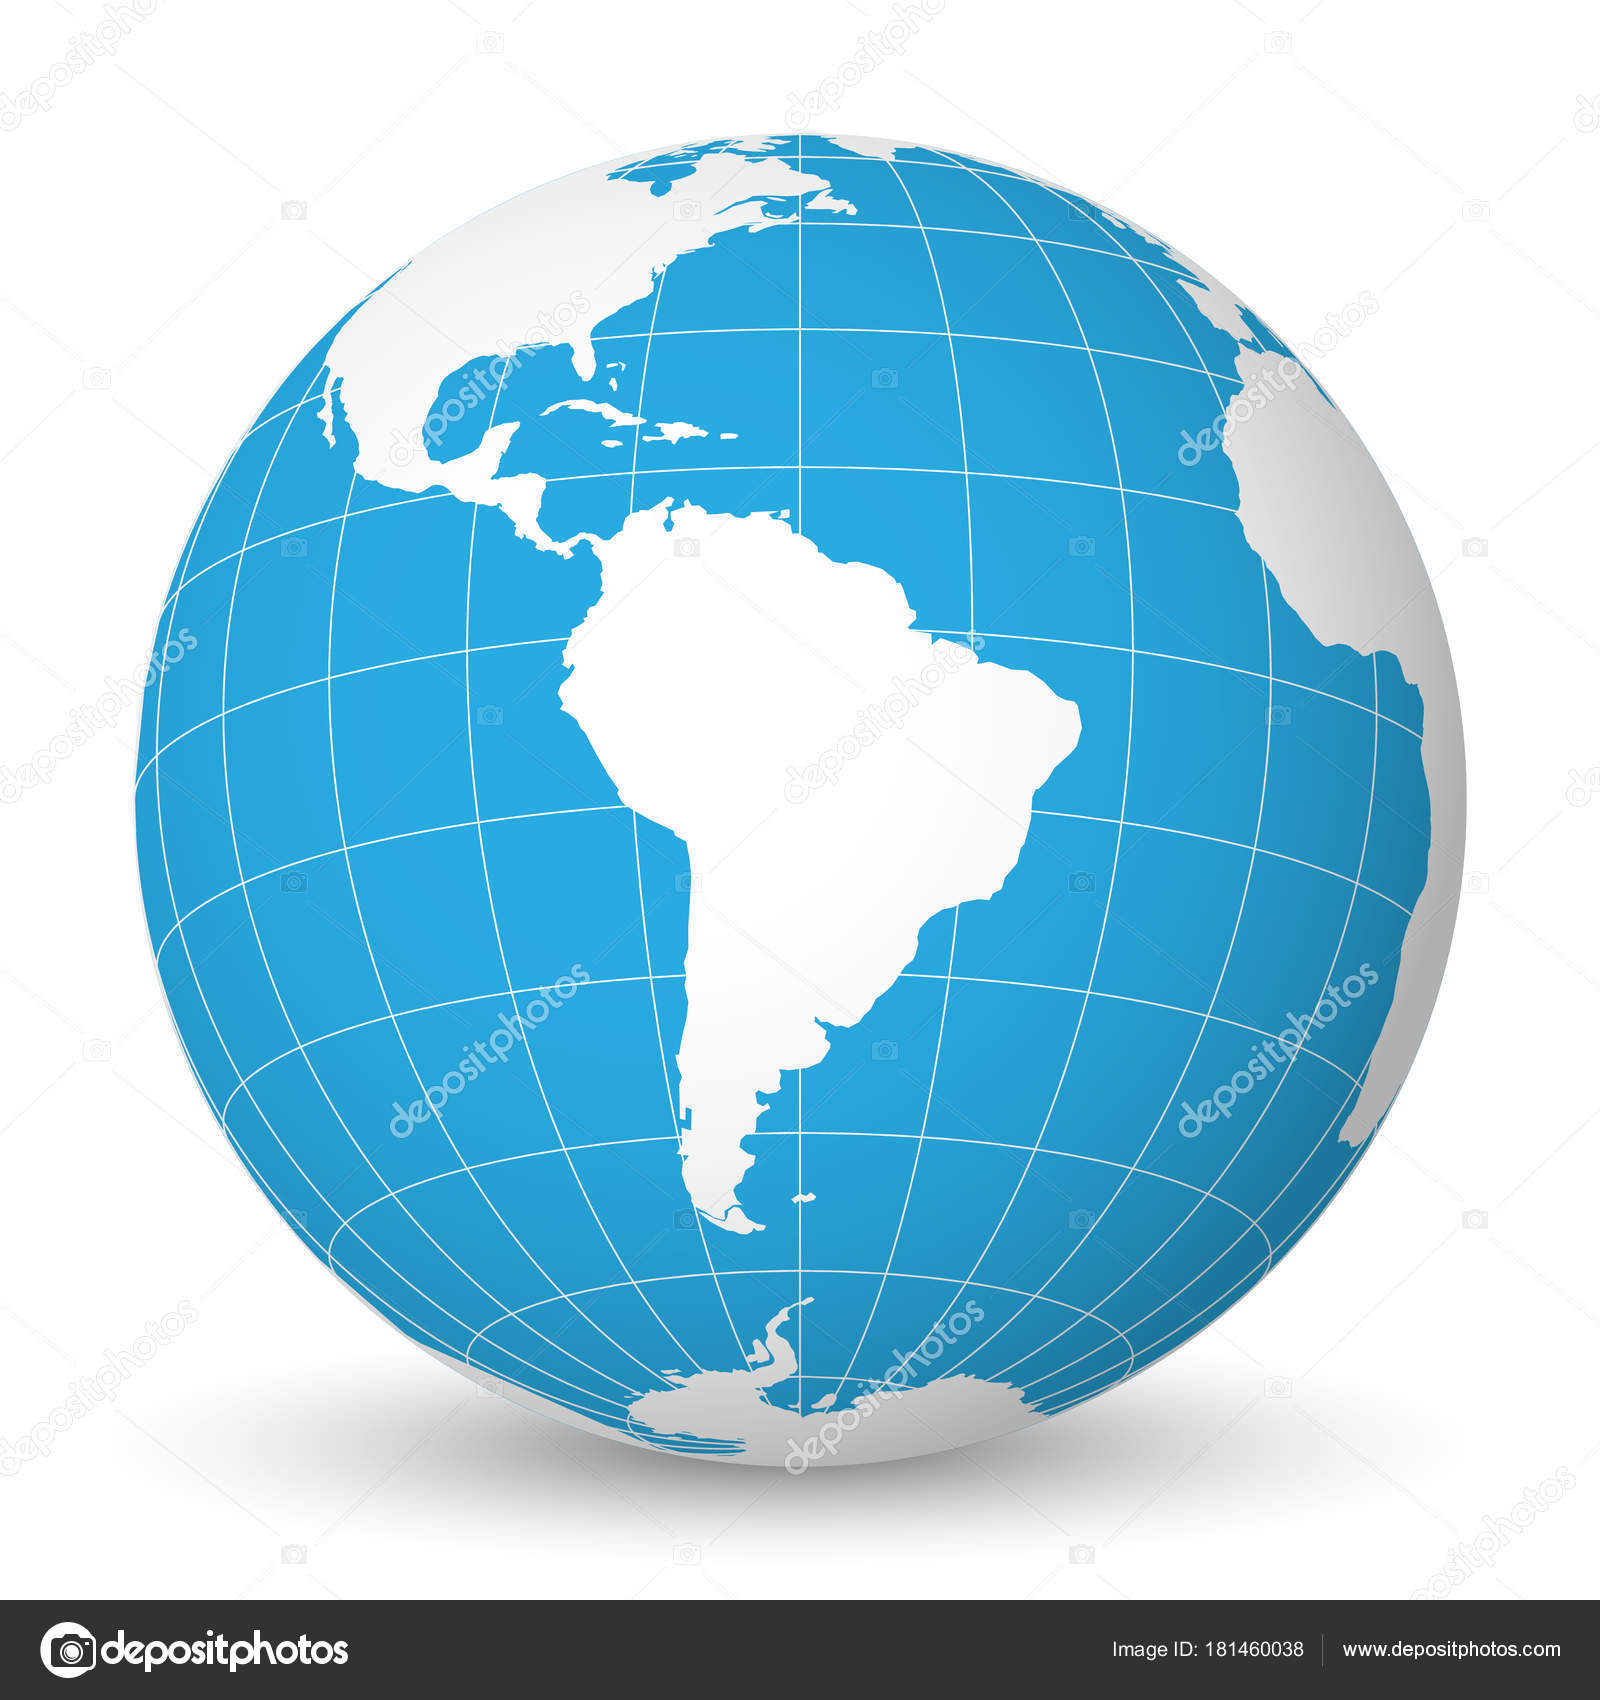 Earth globe with white world map and blue seas and oceans focused on earth globe with green world map and blue seas and oceans focused on south america with thin white meridians and parallels 3d vector illustration gumiabroncs Gallery